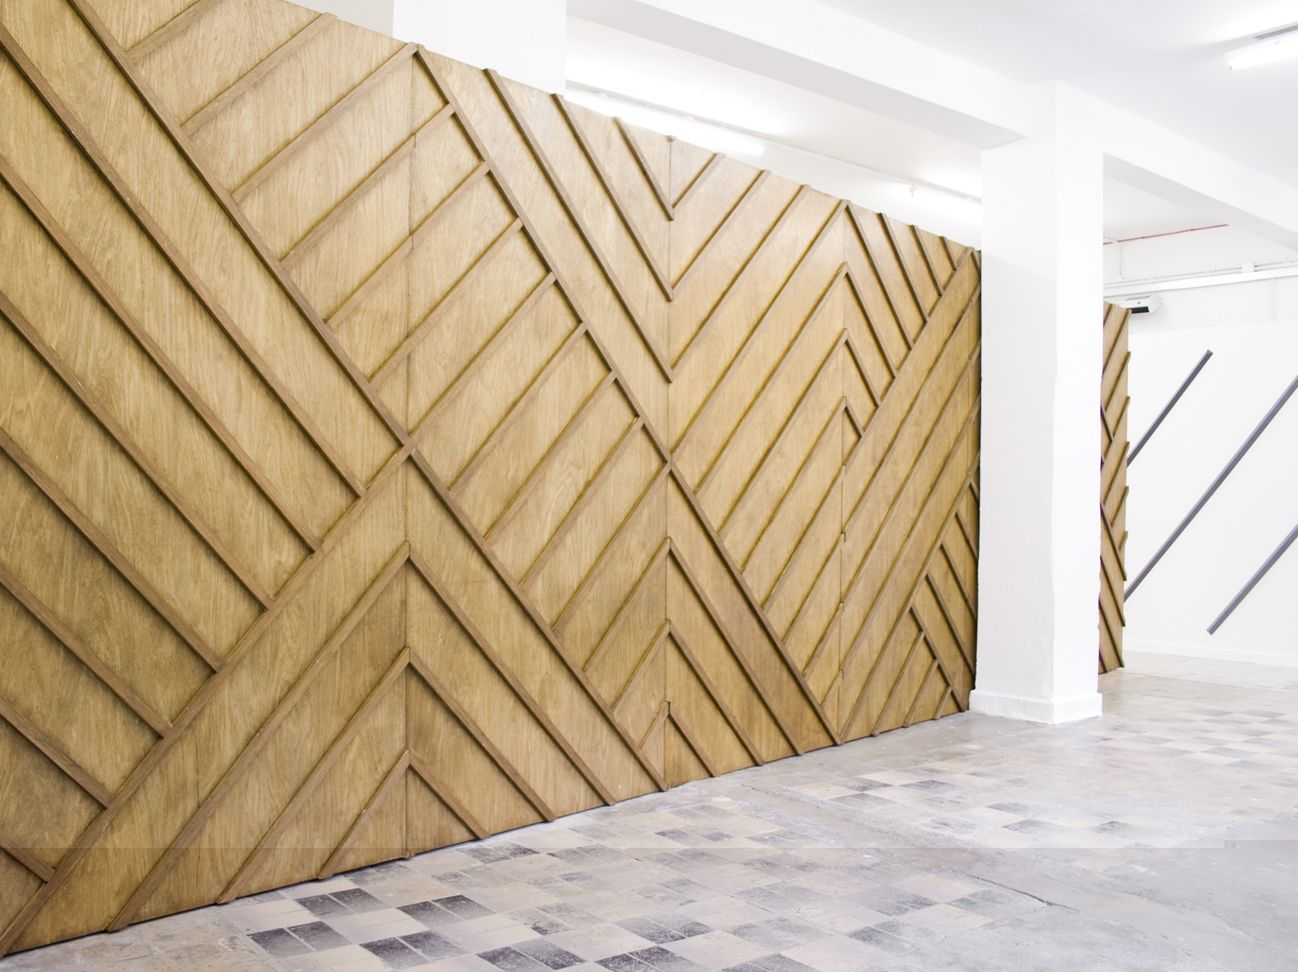 ric warren / borders, boundaries and barricades installation at ...